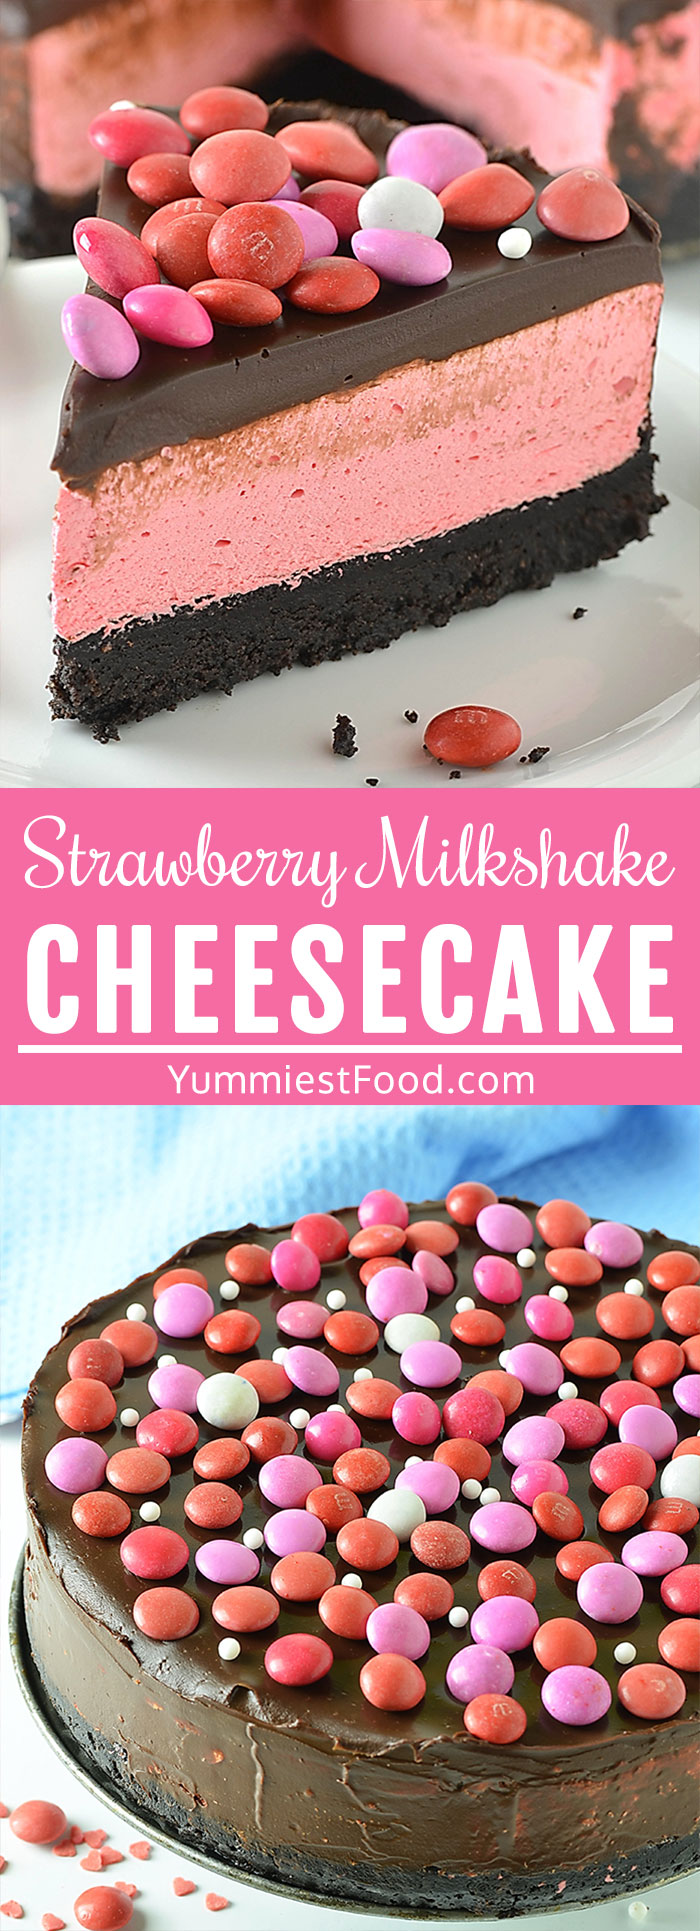 No Bake Strawberry Milkshake Cheesecake is creamy, smooth, bursting with strawberry flavor cheesecake with festive M&M's worthy of any occasion! This gorgeous pink beauty is the perfect choice of cake for Valentine's Day! #valentines #valentinesday #valentinesfood #valentinestreats #cheesecakerecipes #cheesecake